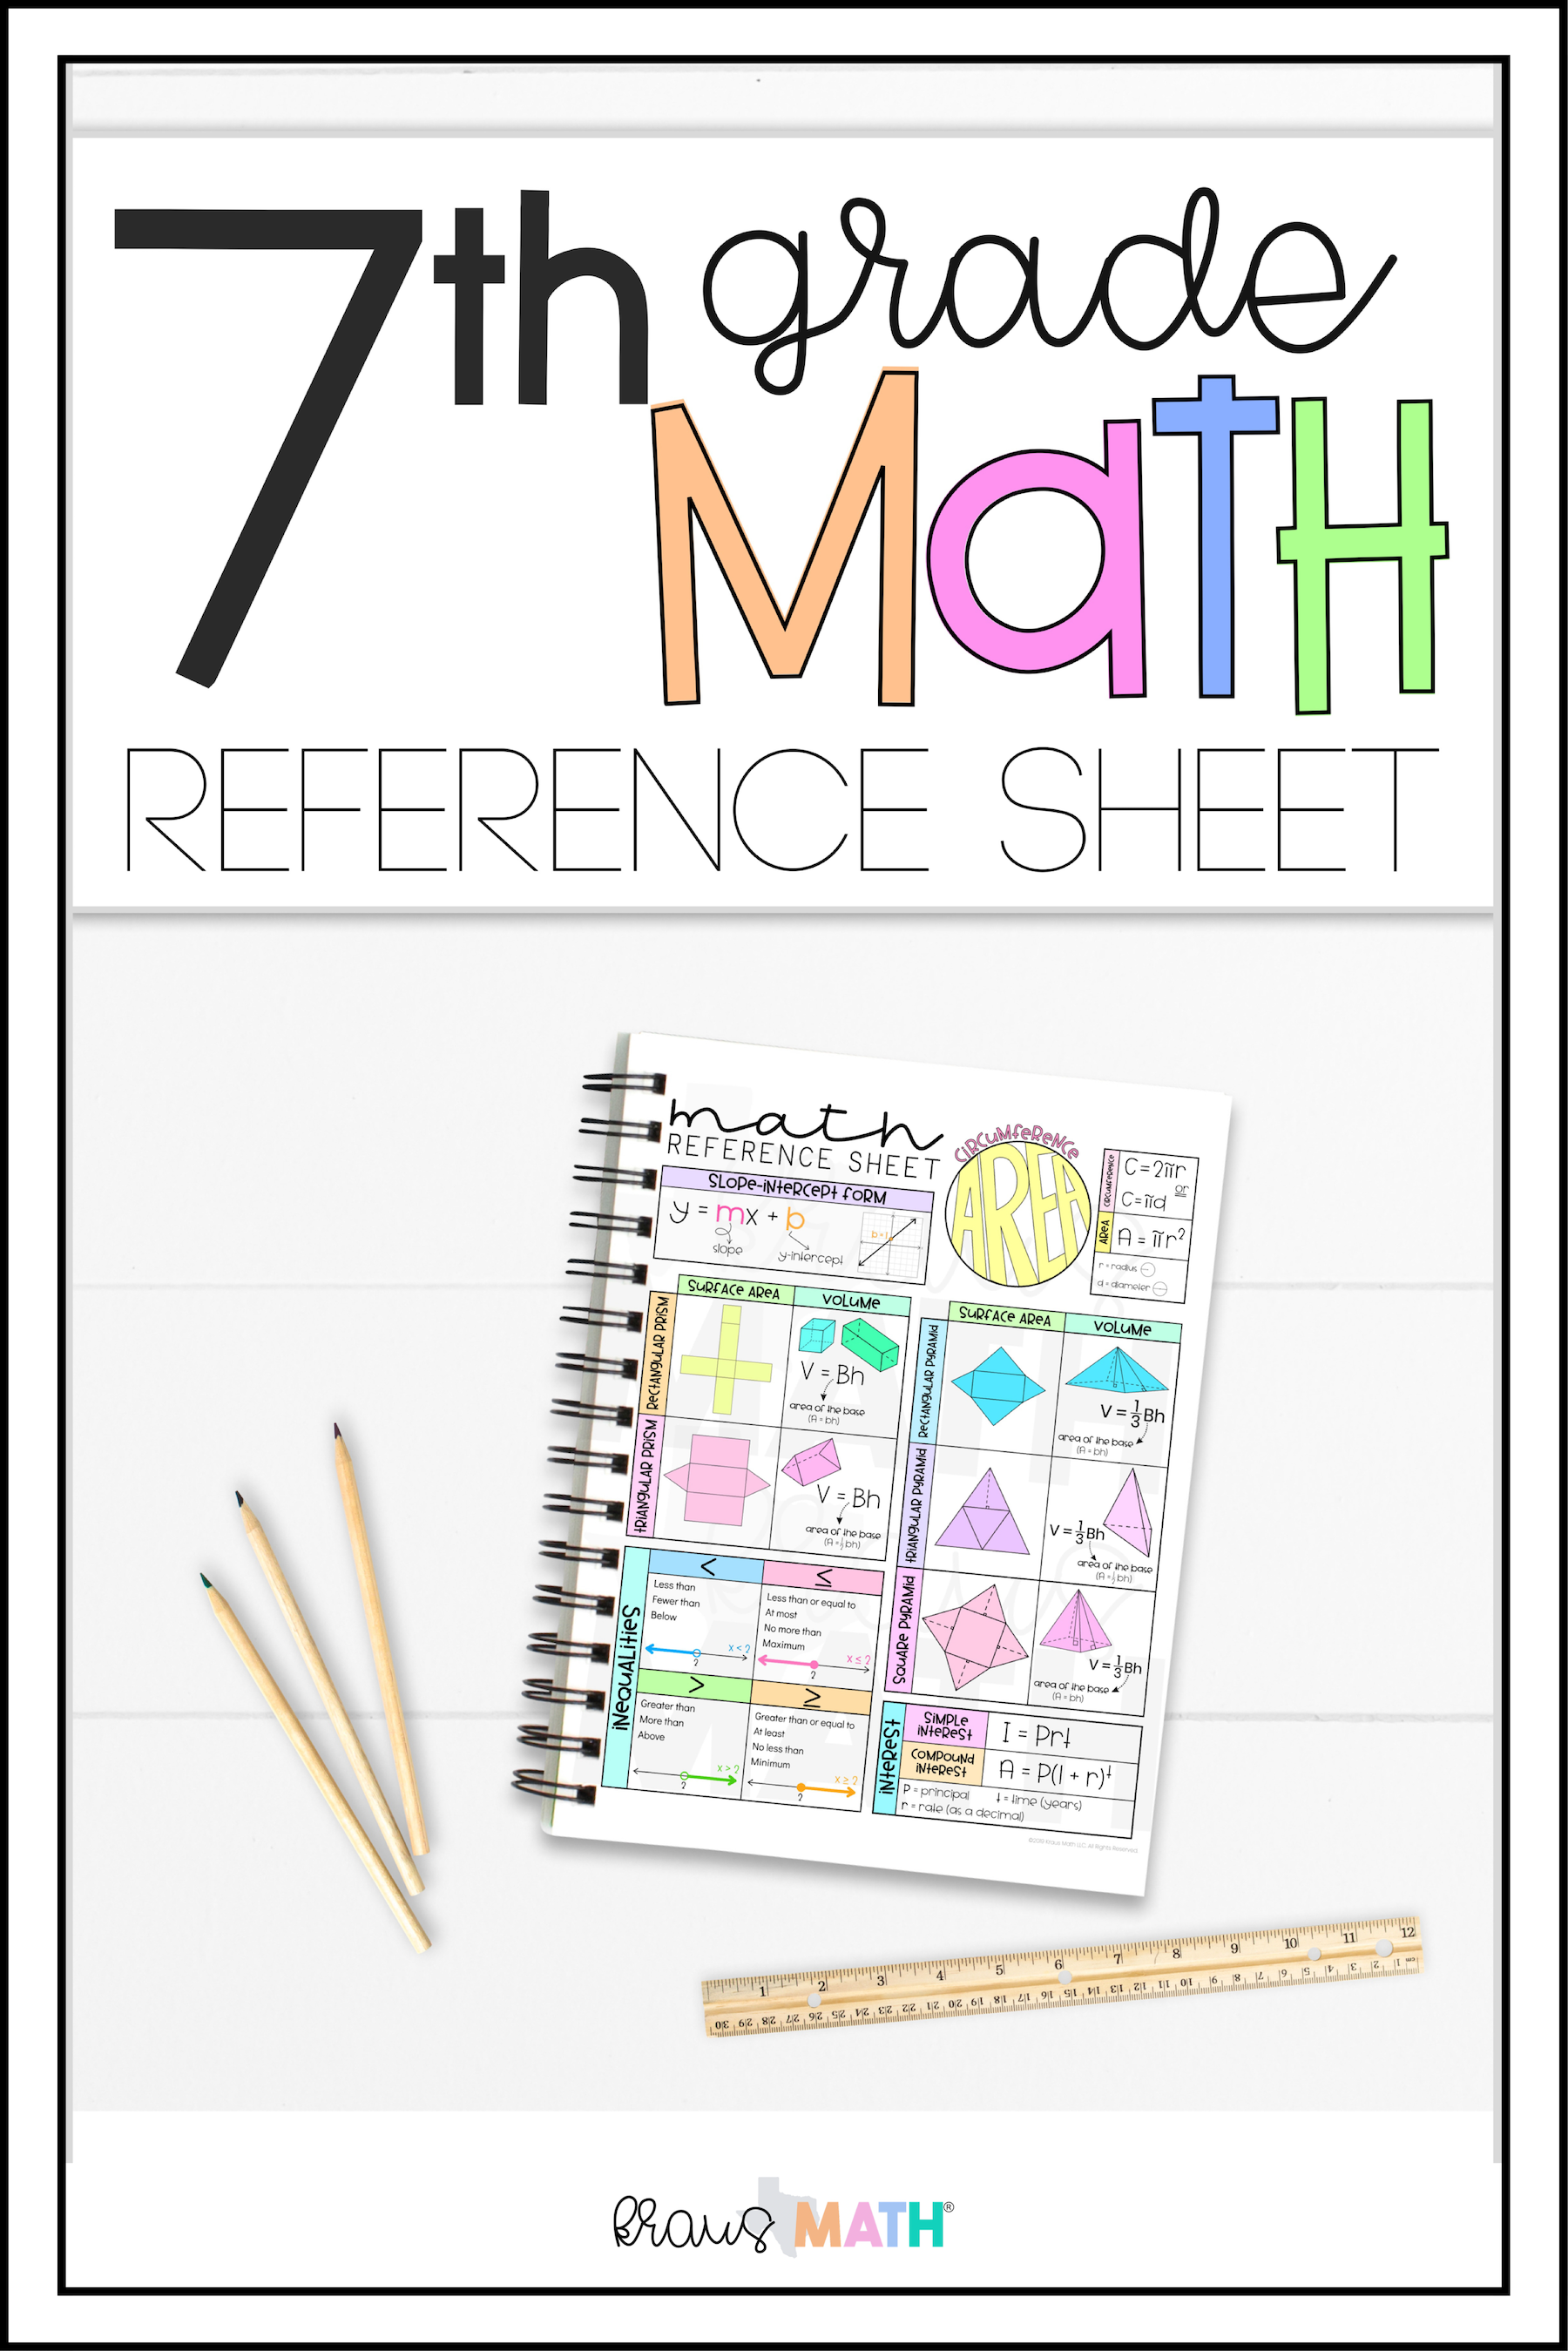 small resolution of 7th Grade Math Reference Sheet   Kraus Math   Math reference sheet